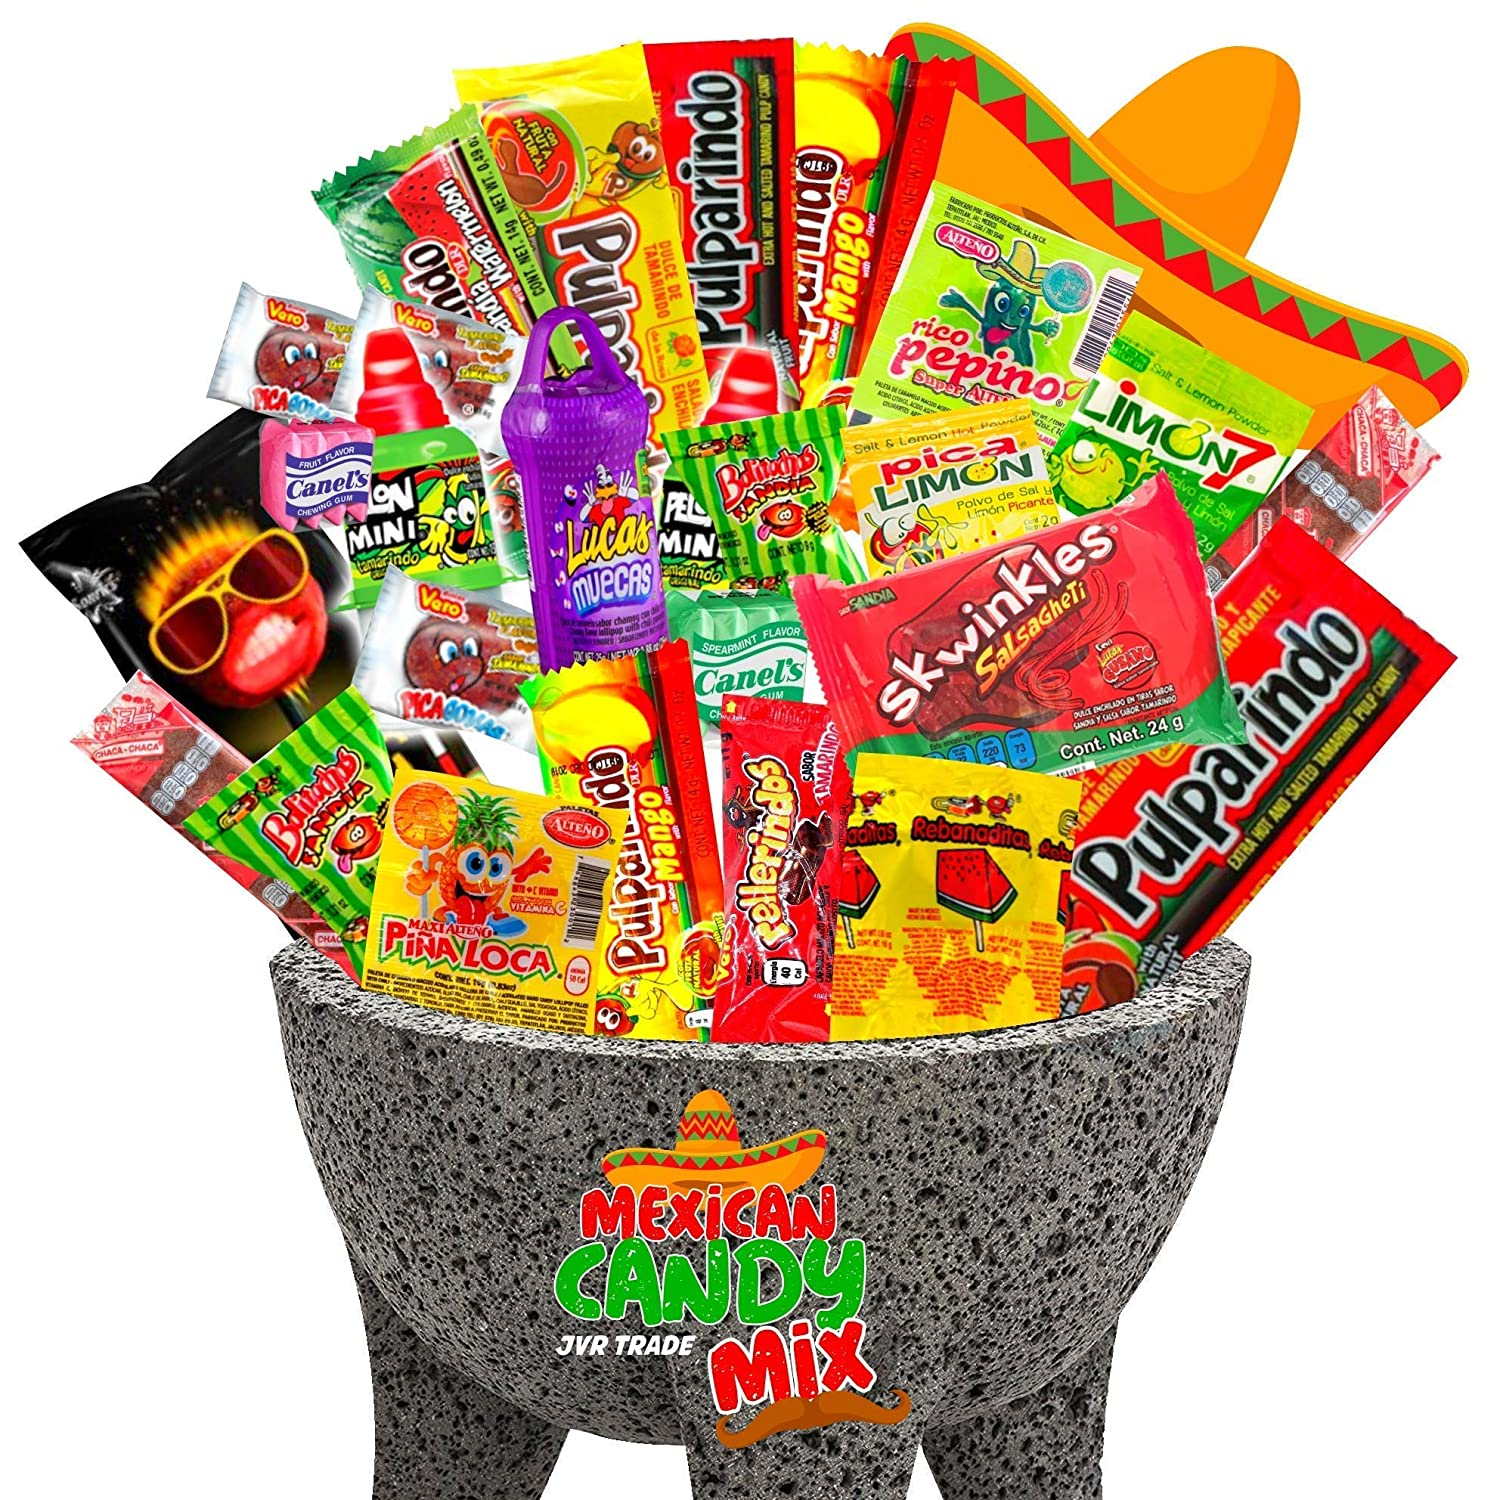 Mexican Candy Mix Assortment Snack (40 Count) Dulces Mexicanos Variety Of Best Sellers Spicy, Sweet, and Sour Bulk candies, Includes Luca Candy, Pelon, Pulparindo, Rellerindo, by JVR TRADE